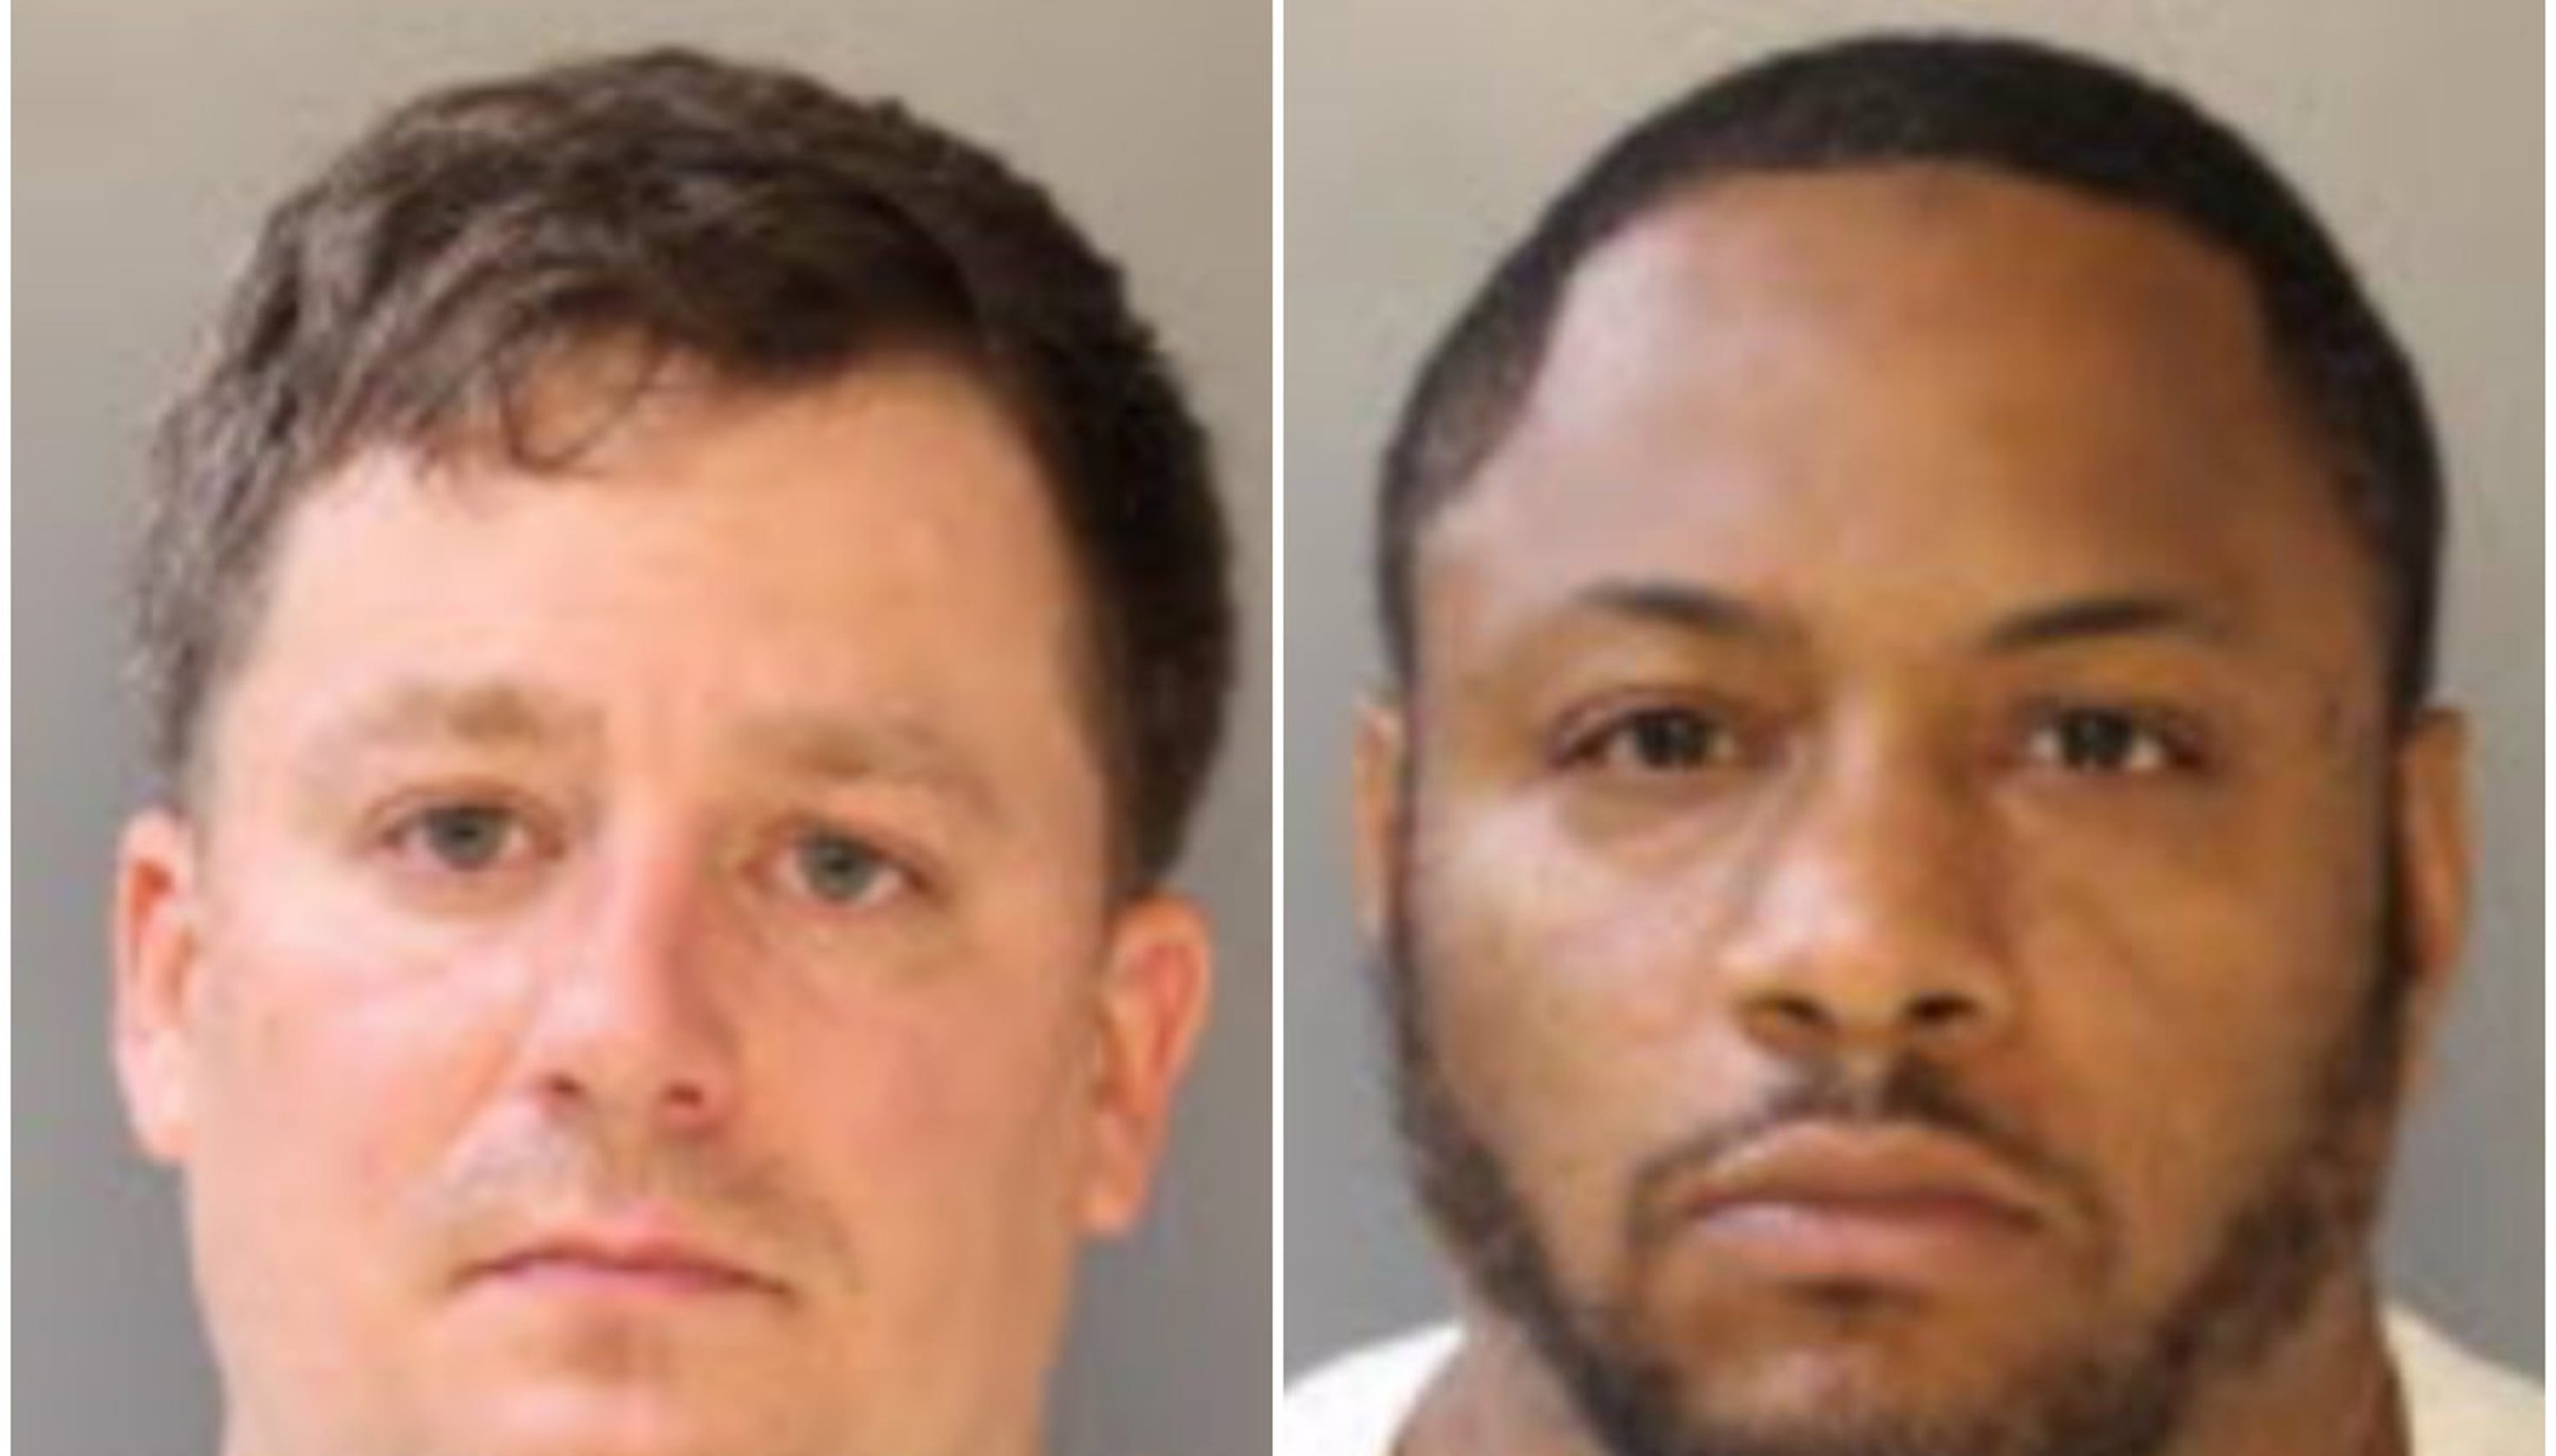 Marijuana shipment in NJ leads to trafficking arrests, guns in Philly